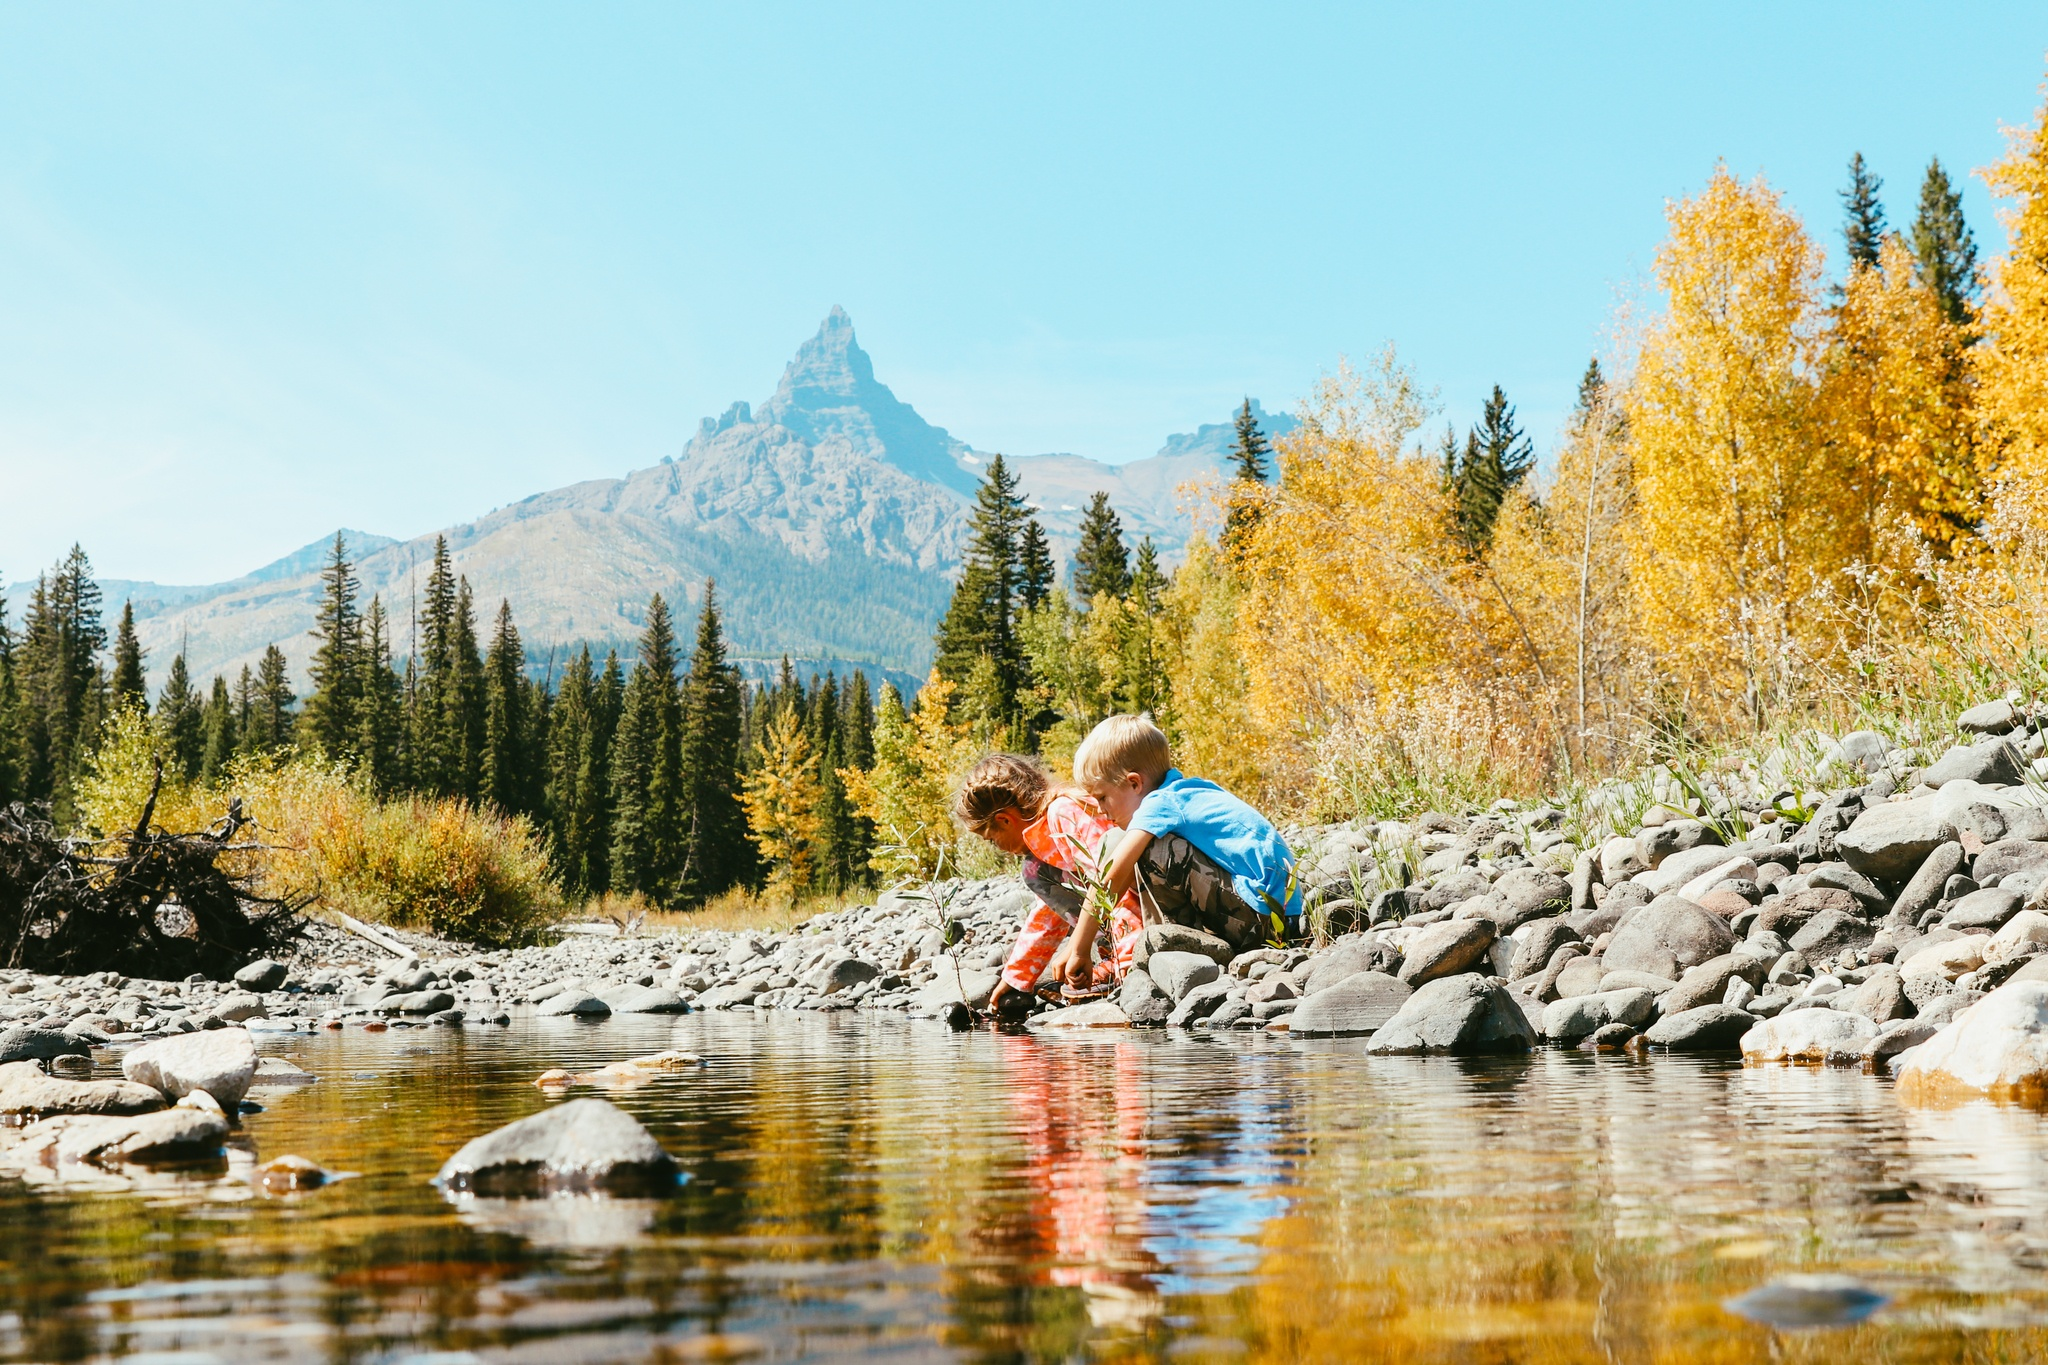 Kids playing in the river, Aspens in the fall, Pilot - Index, Wyoming